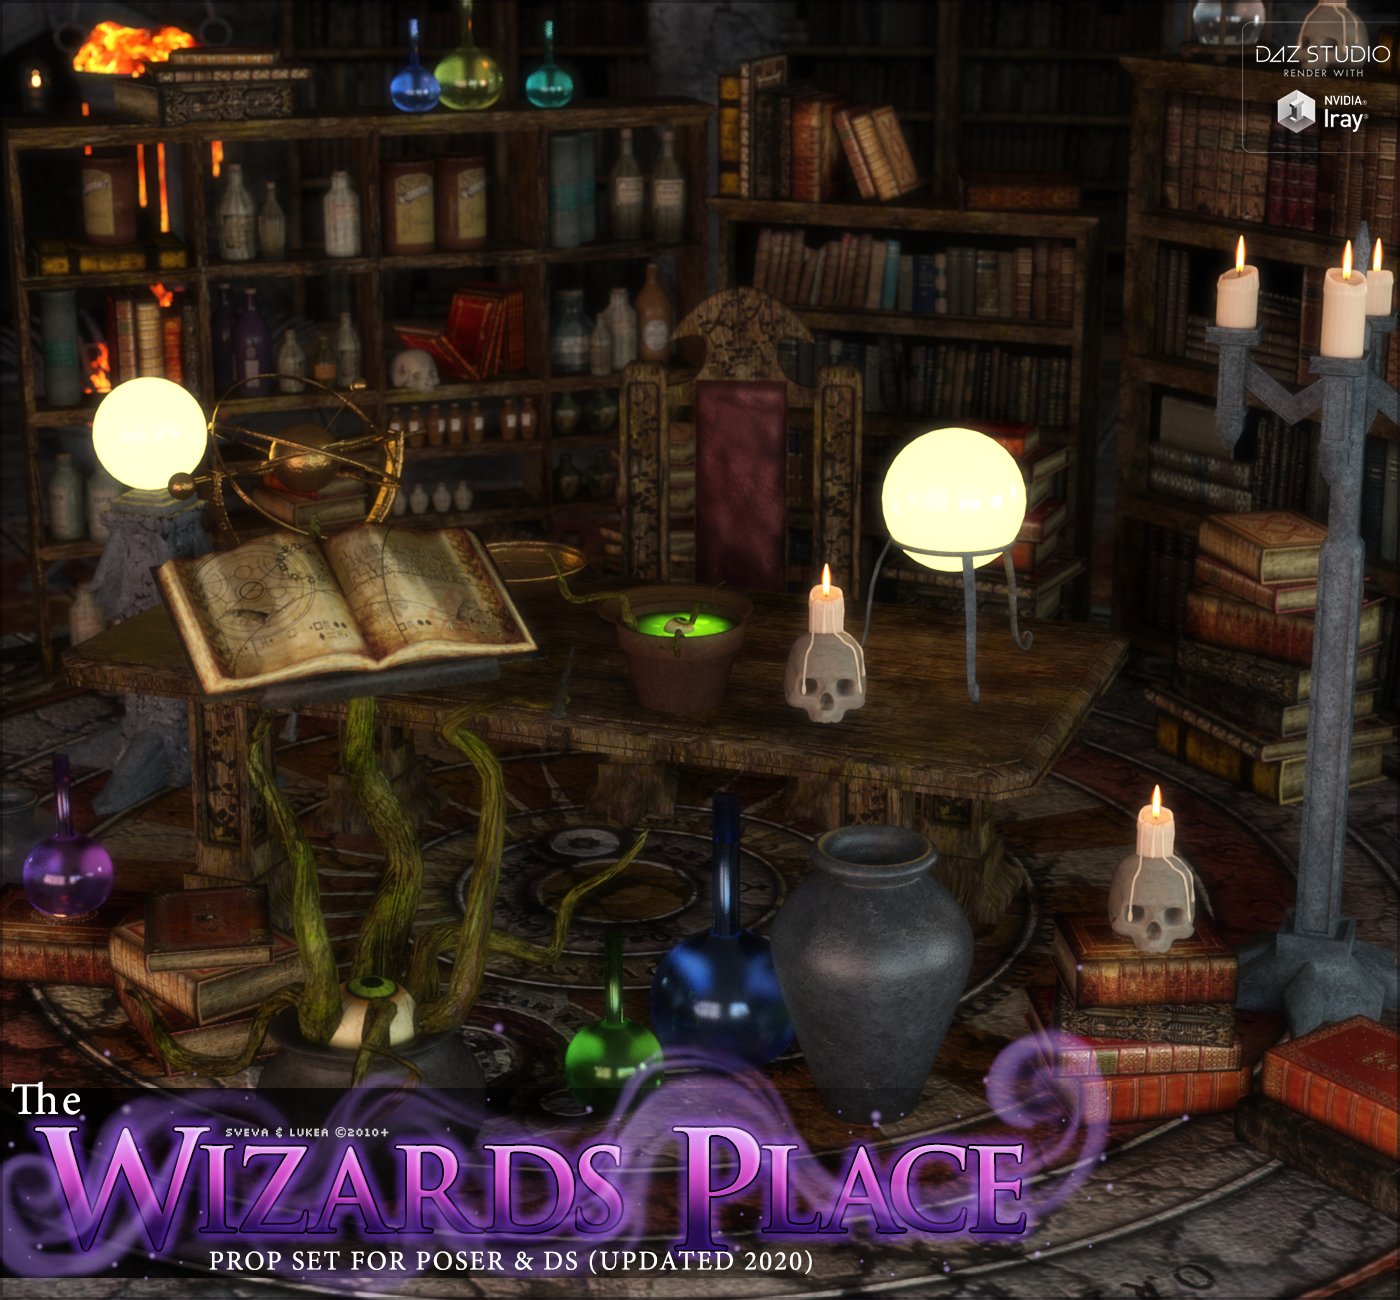 The Wizards Place